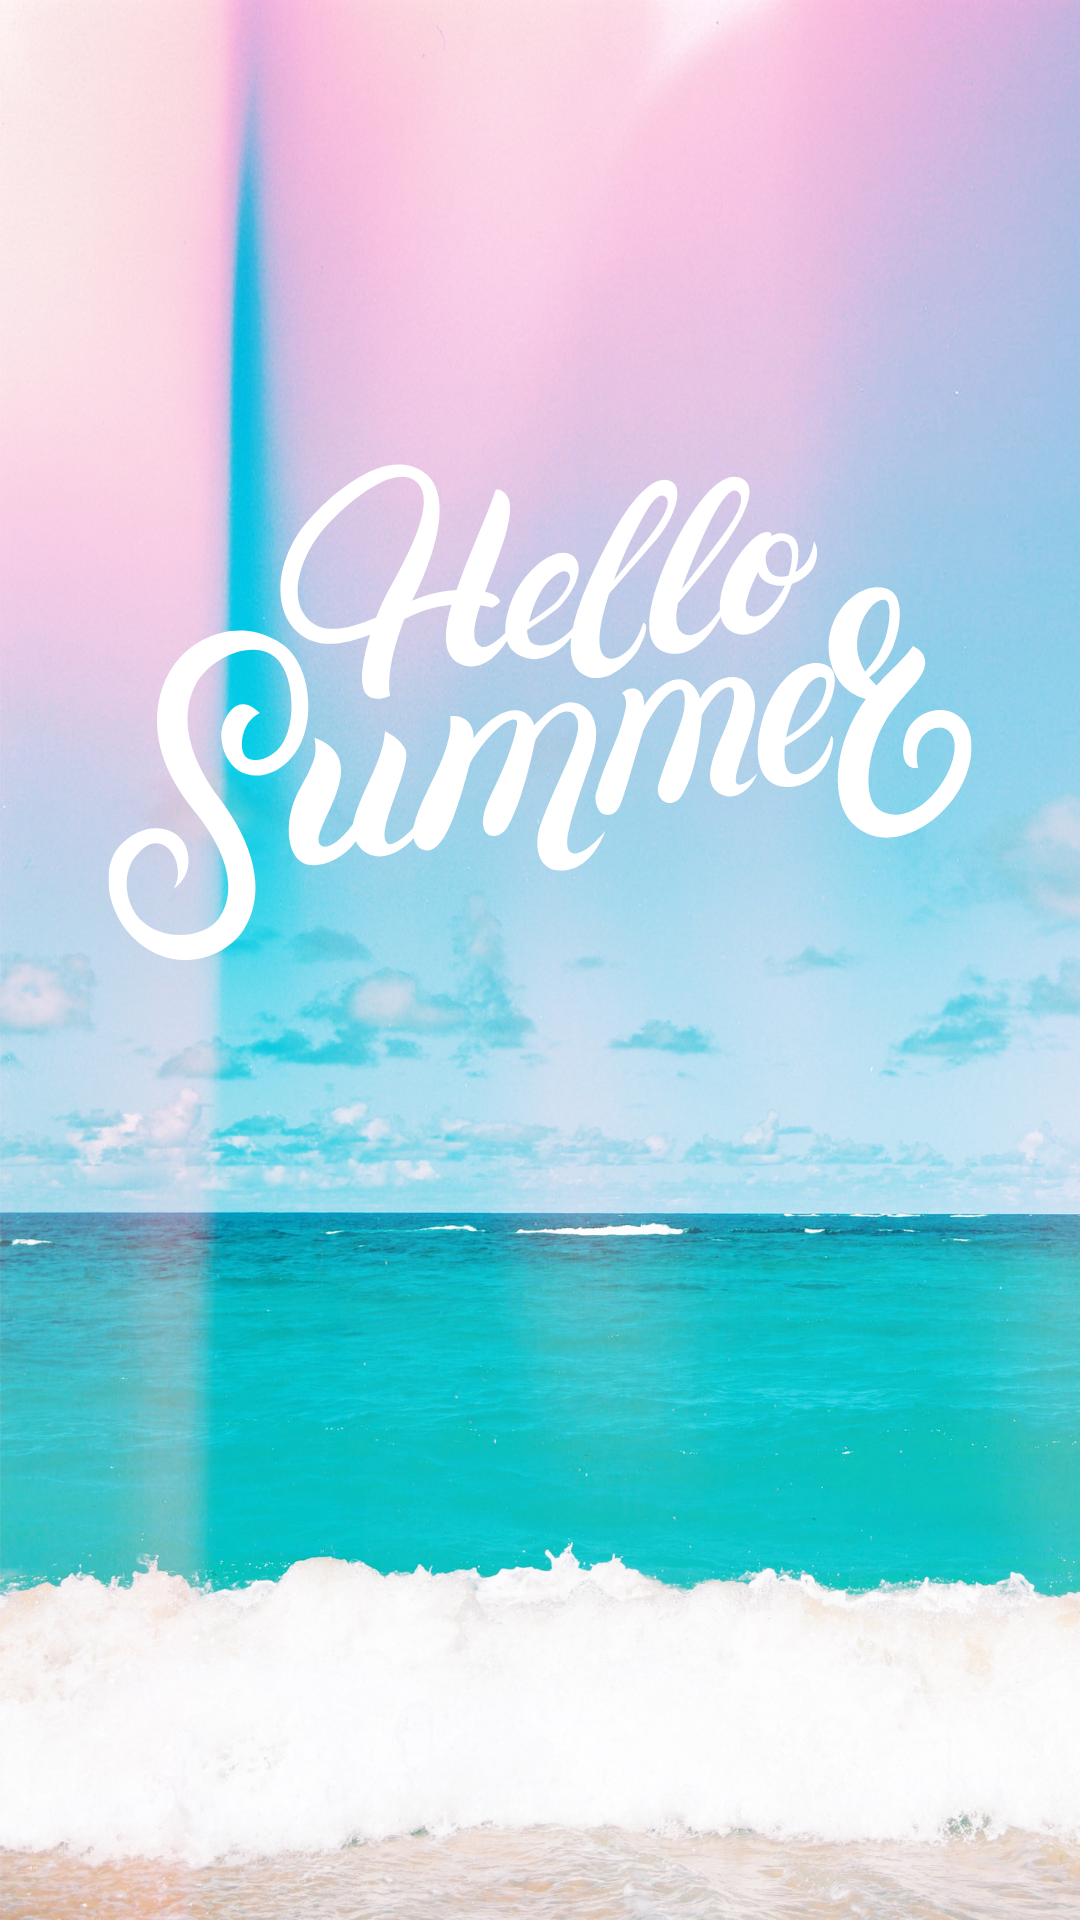 August free downloads wallpaper 36 touch email (2).png